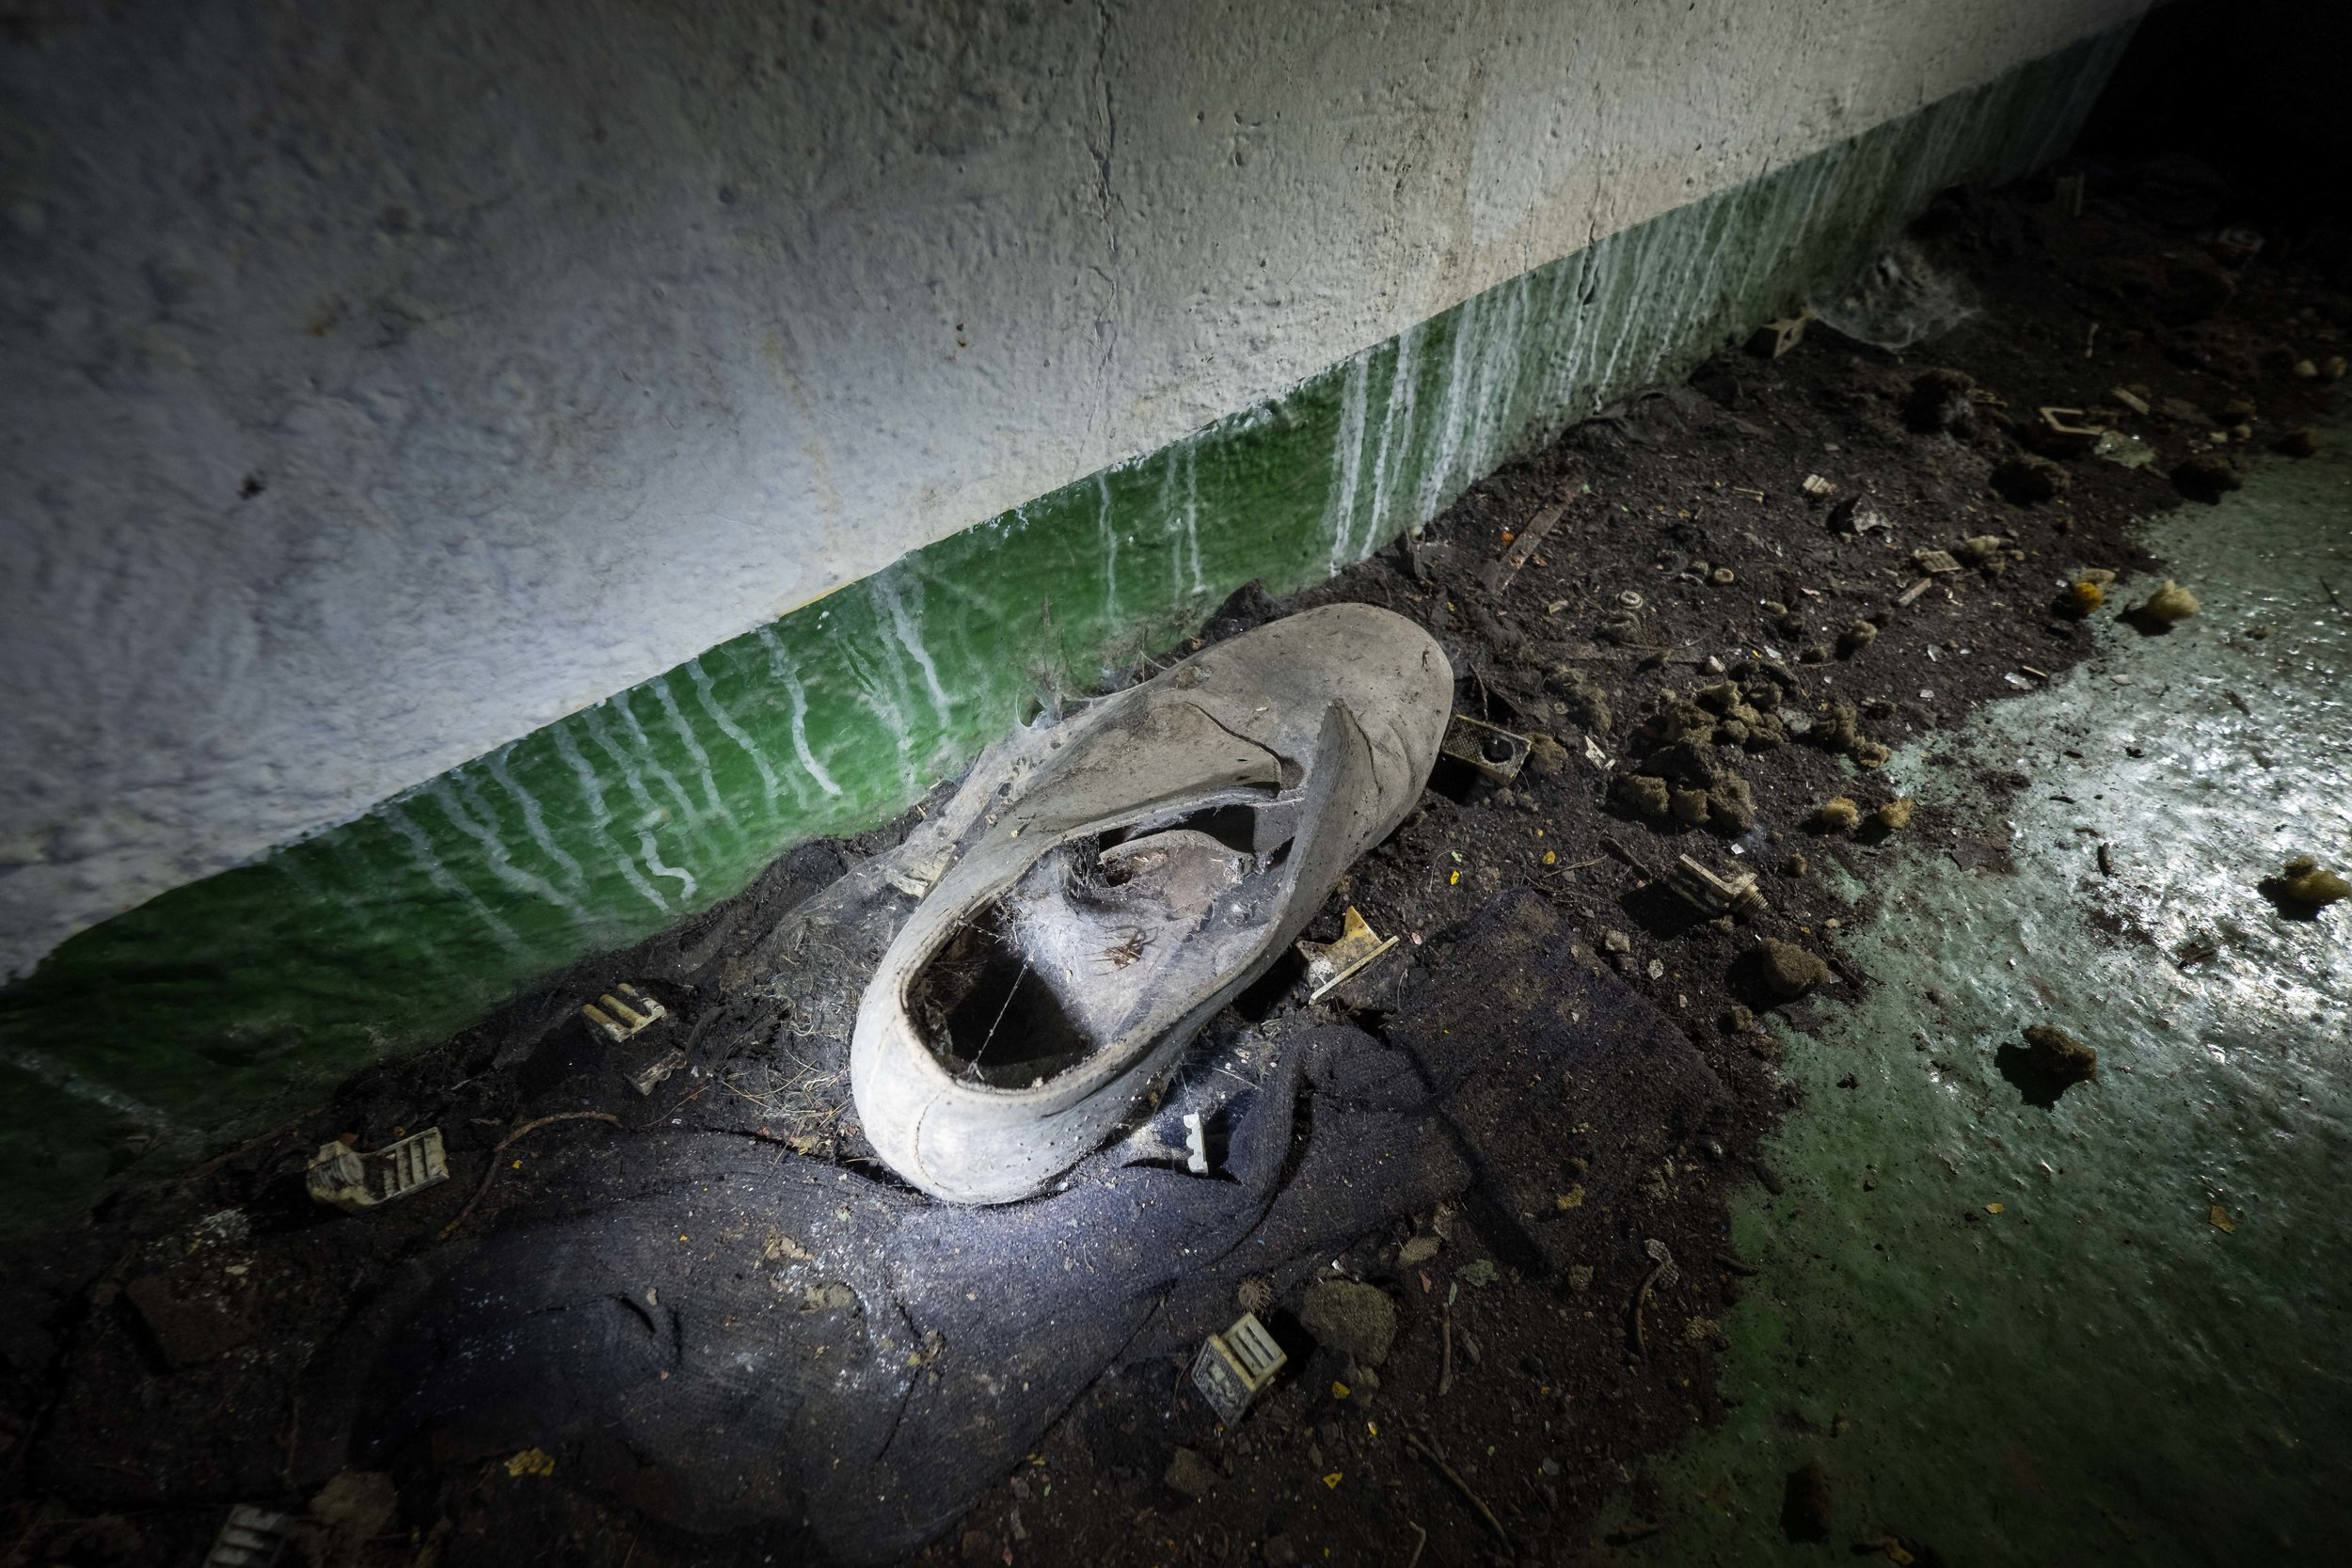 why are there always old shoes at abandoned sites?